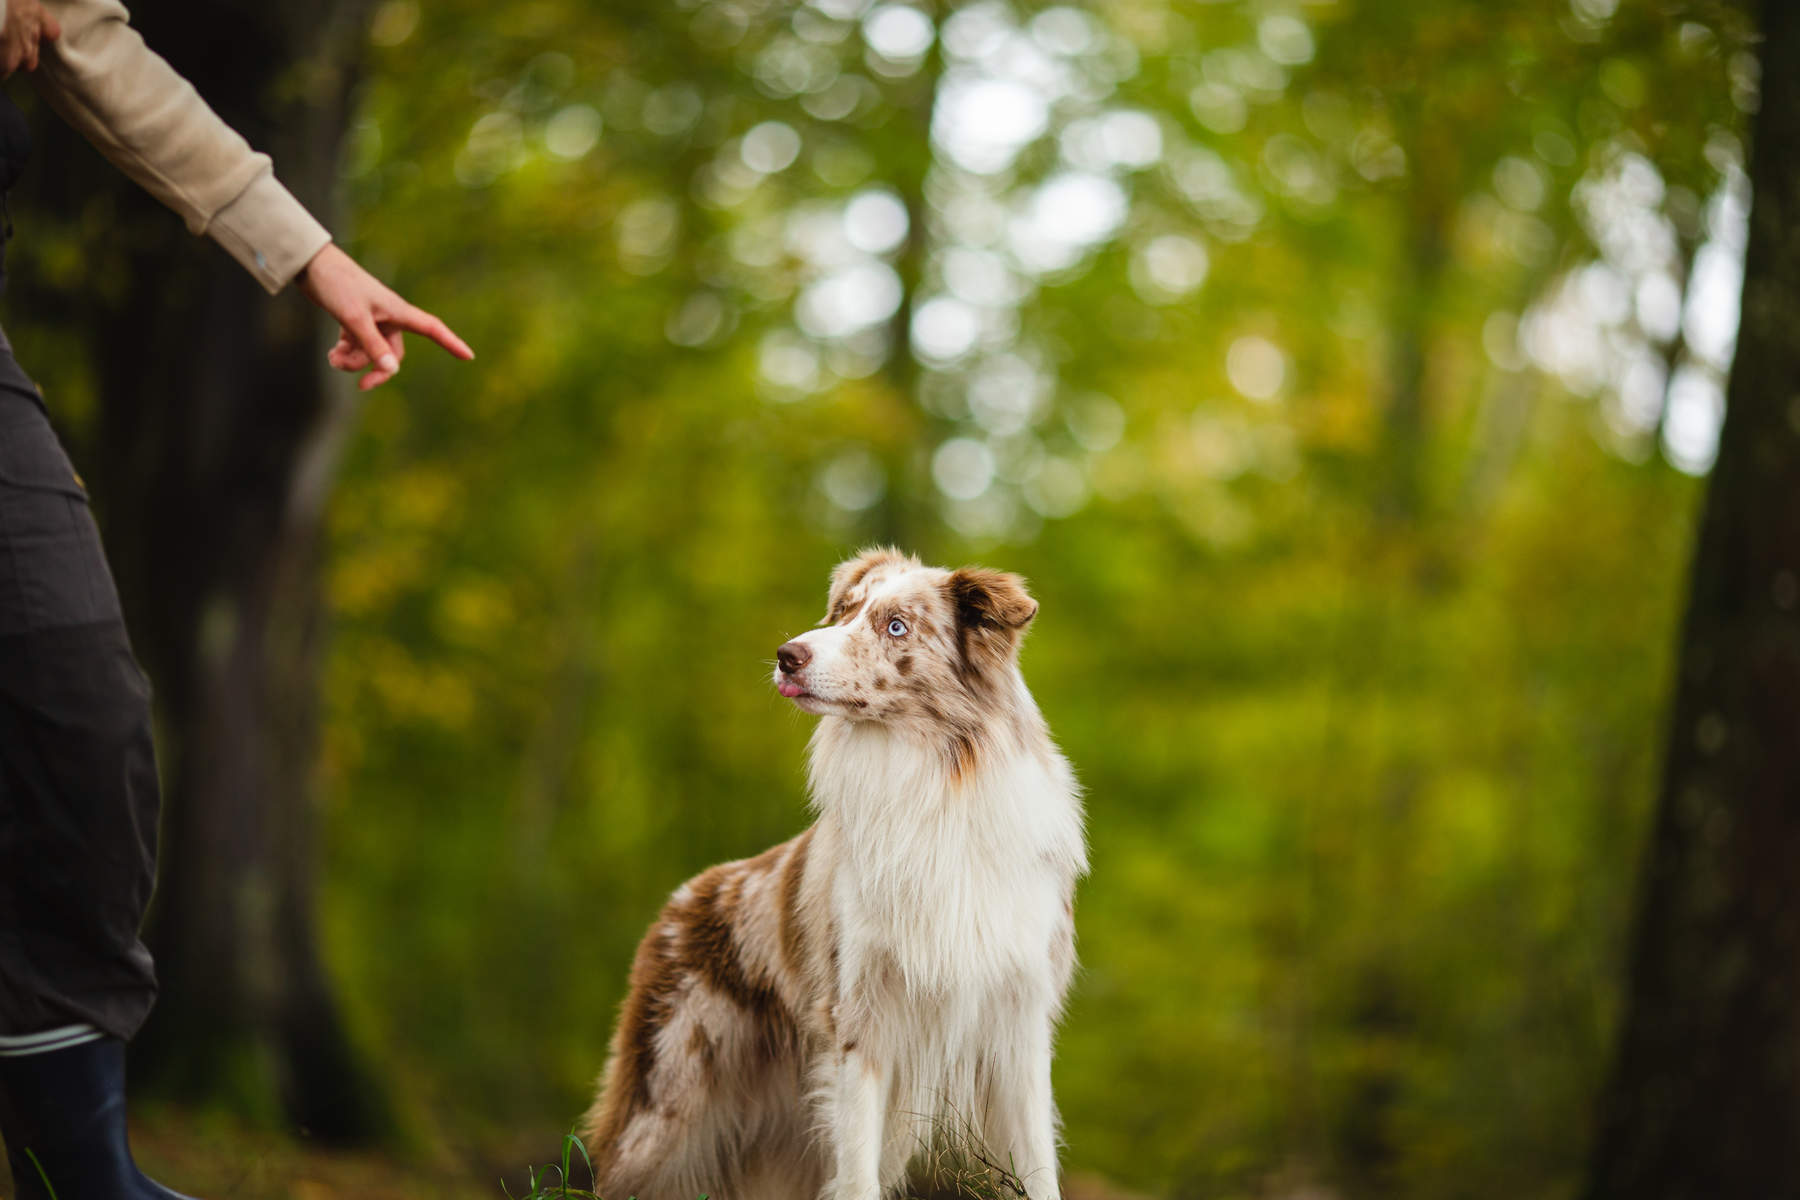 behind-the-scenes-Alicja-Zmys-owska-workshop-dog-photography-03